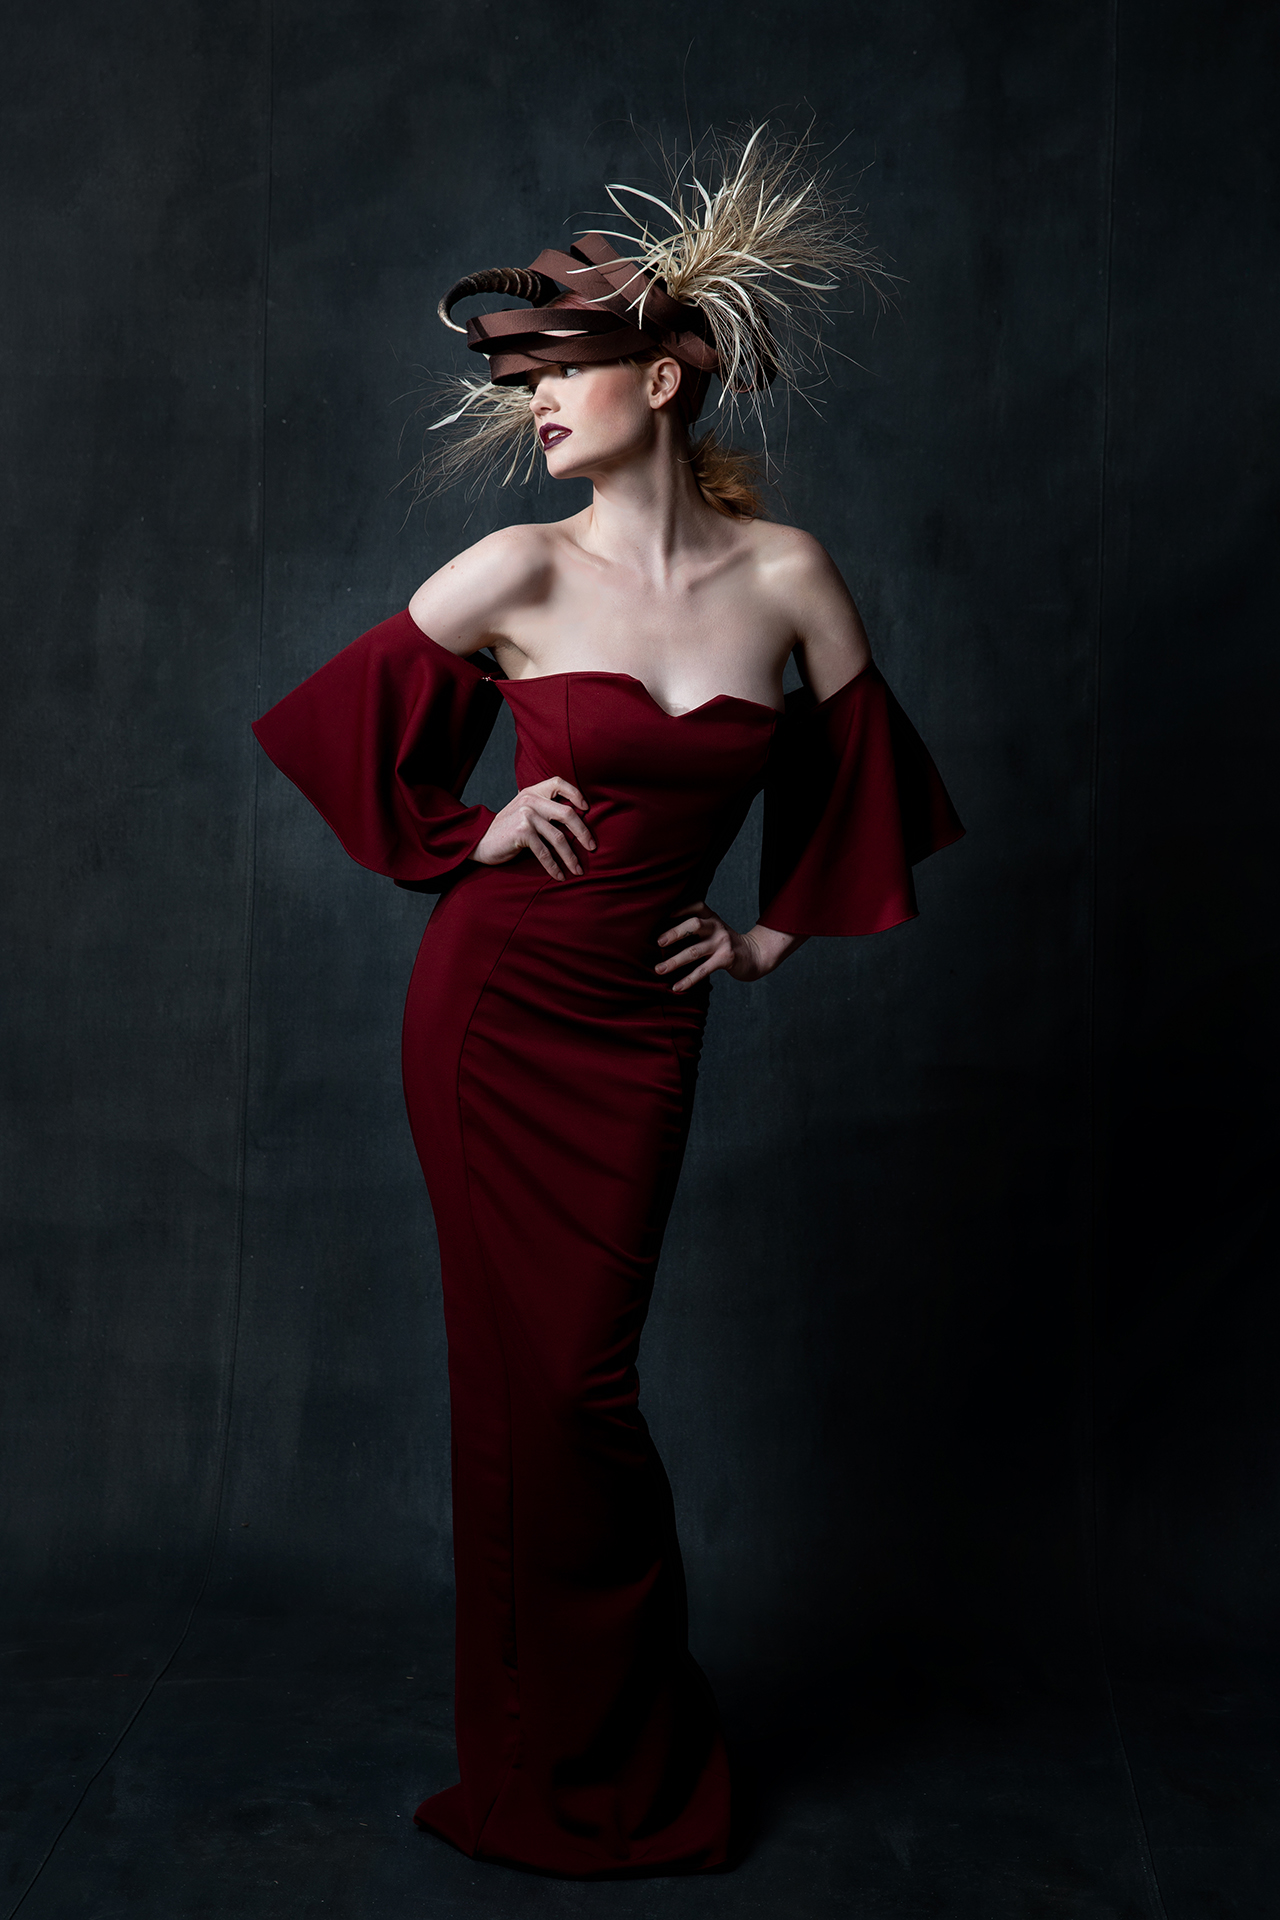 mark_and_naomi_toronto_fashion_photographers_david_dunkley_red_horn_ii.jpg